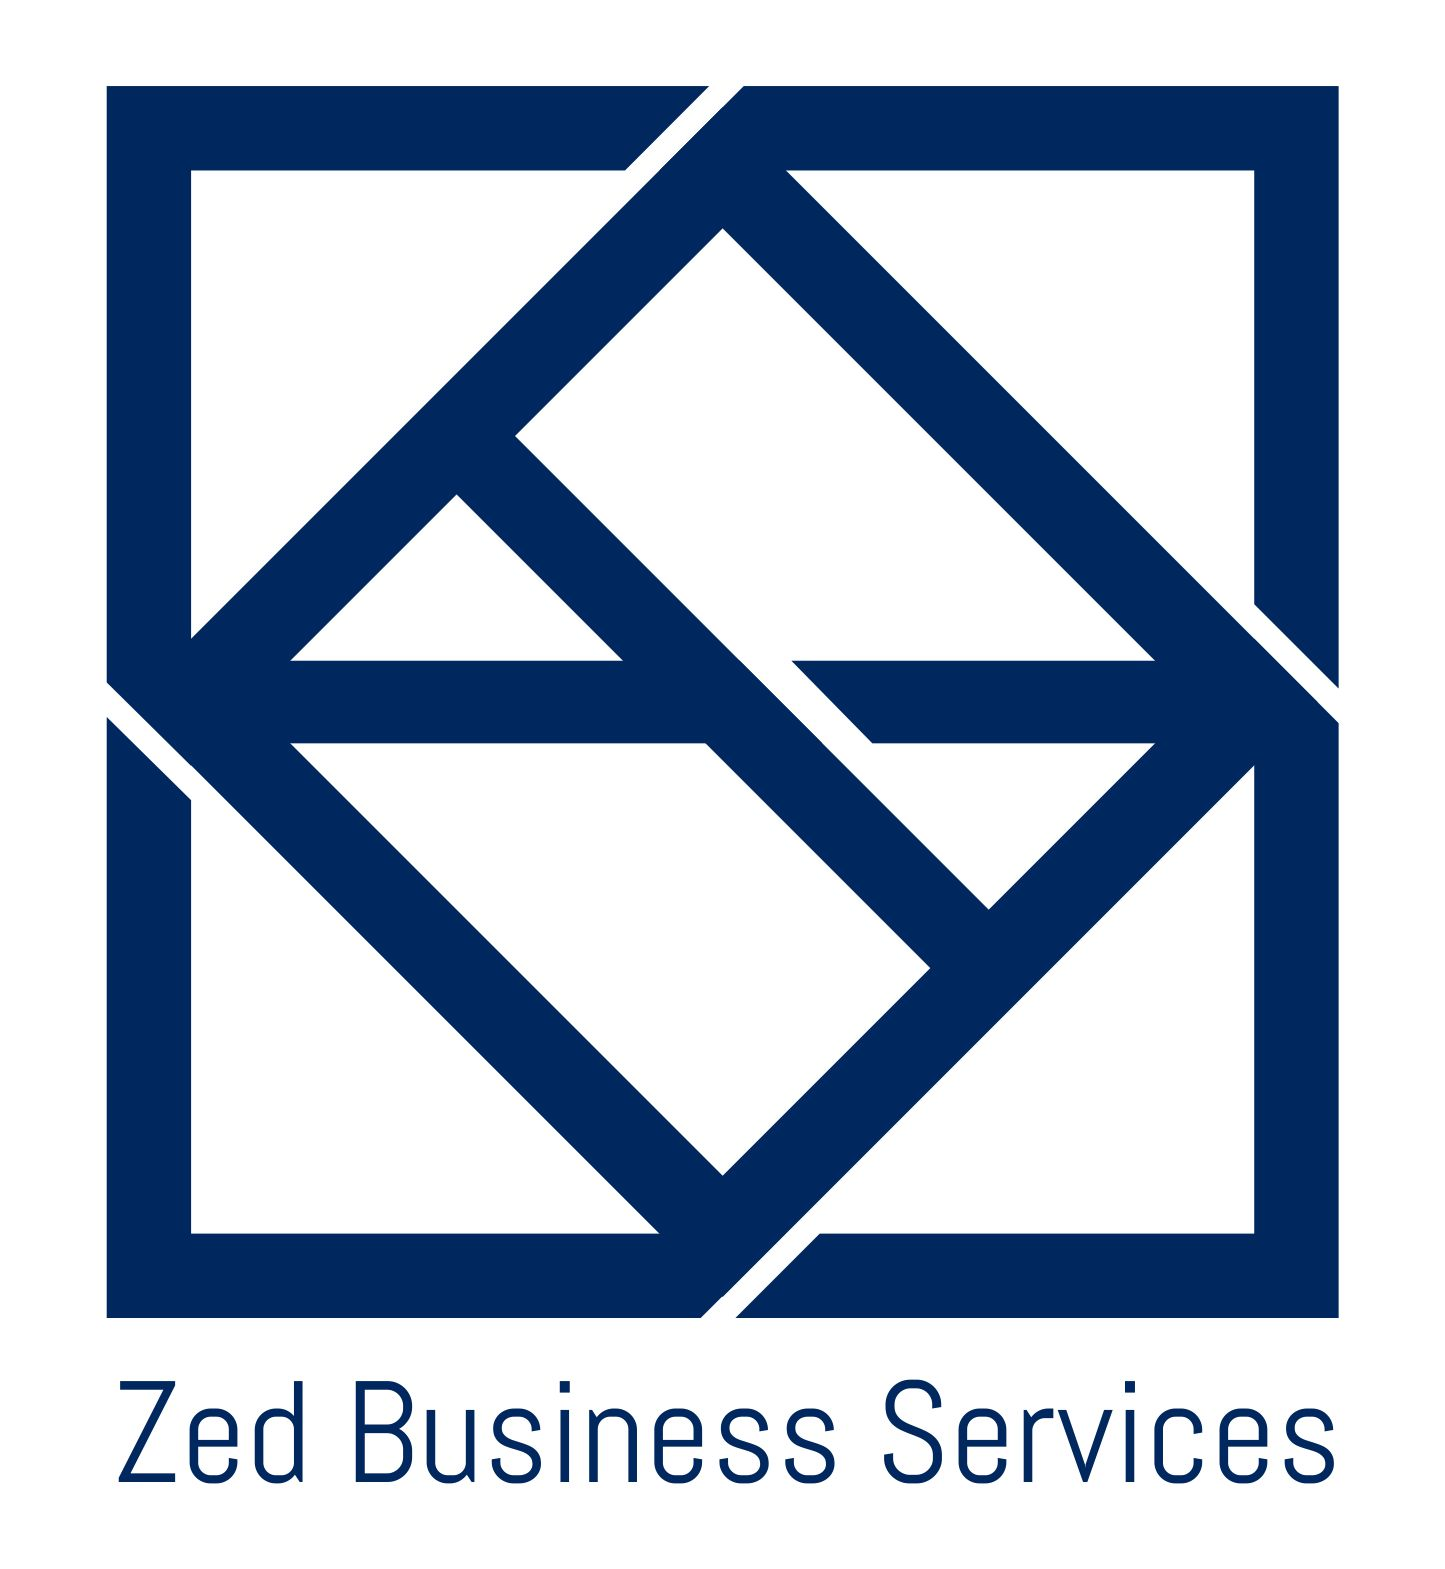 Zed Business Services